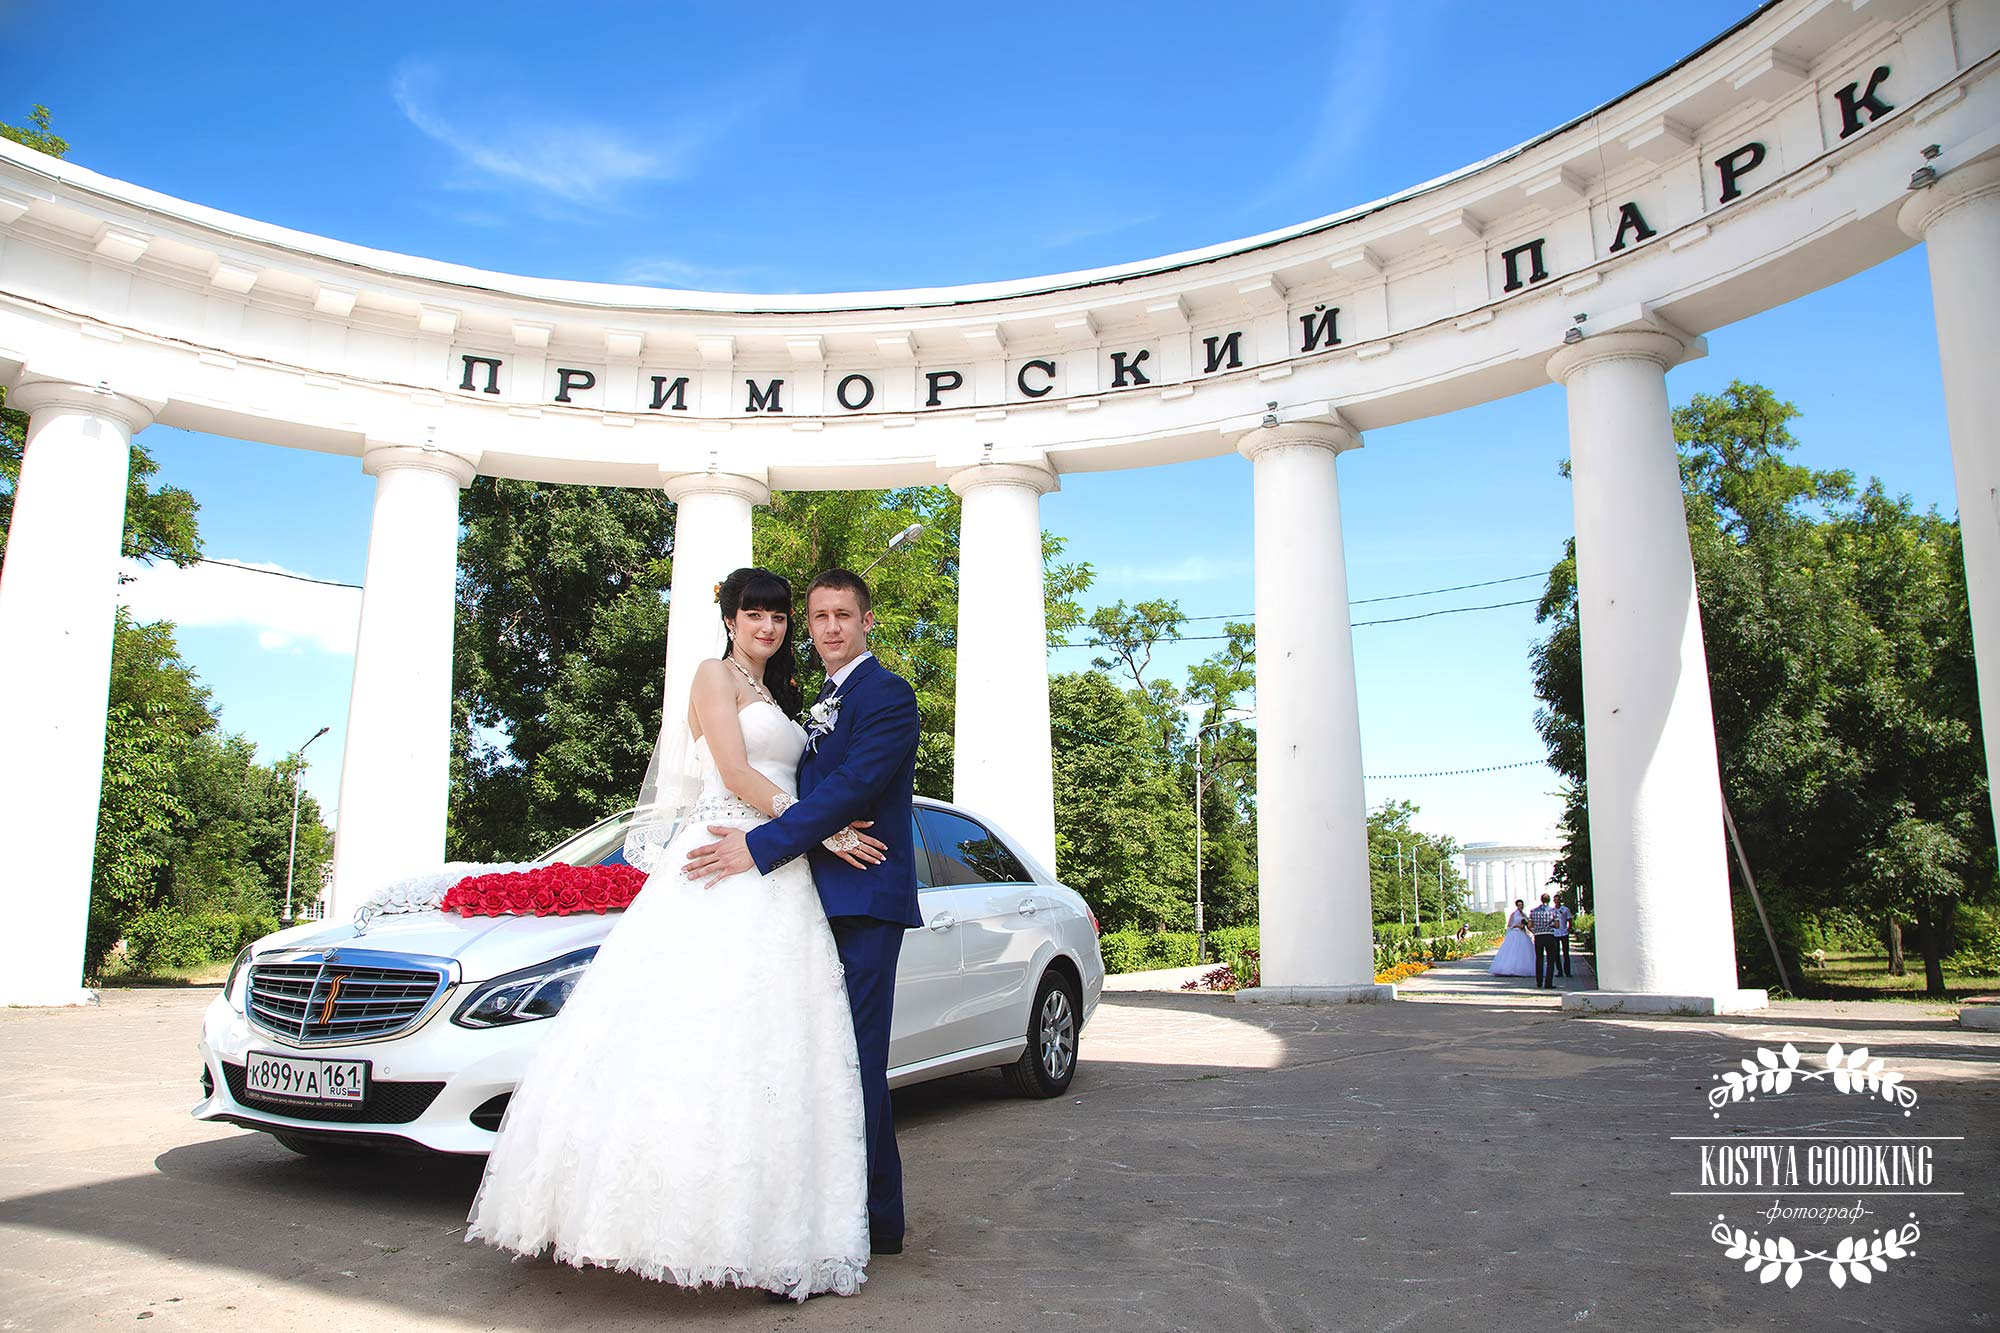 Wedding Photo Kostya Goodking 23